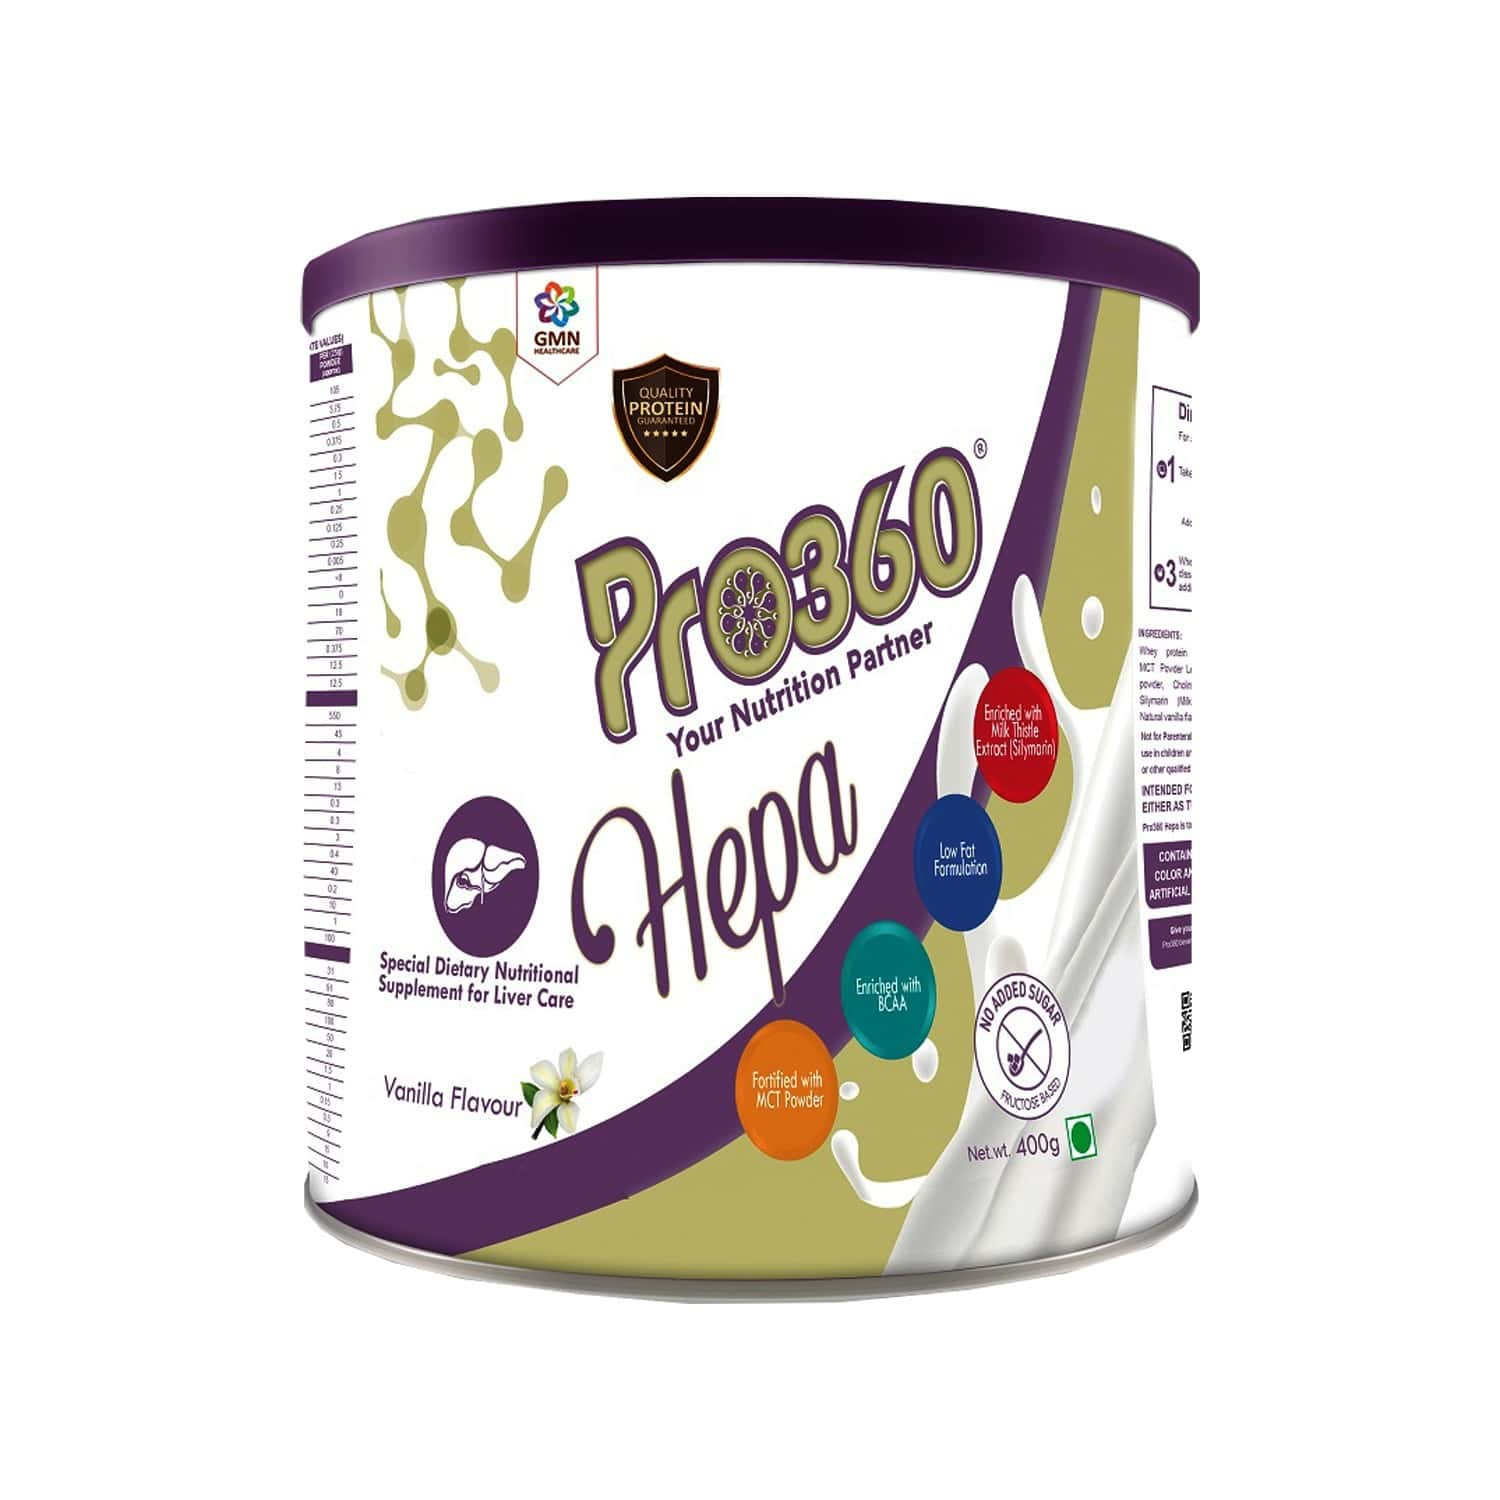 Pro360 Hepa Nutritional Supplement Powder For Liver Care - Vanilla Flavour - 400gm